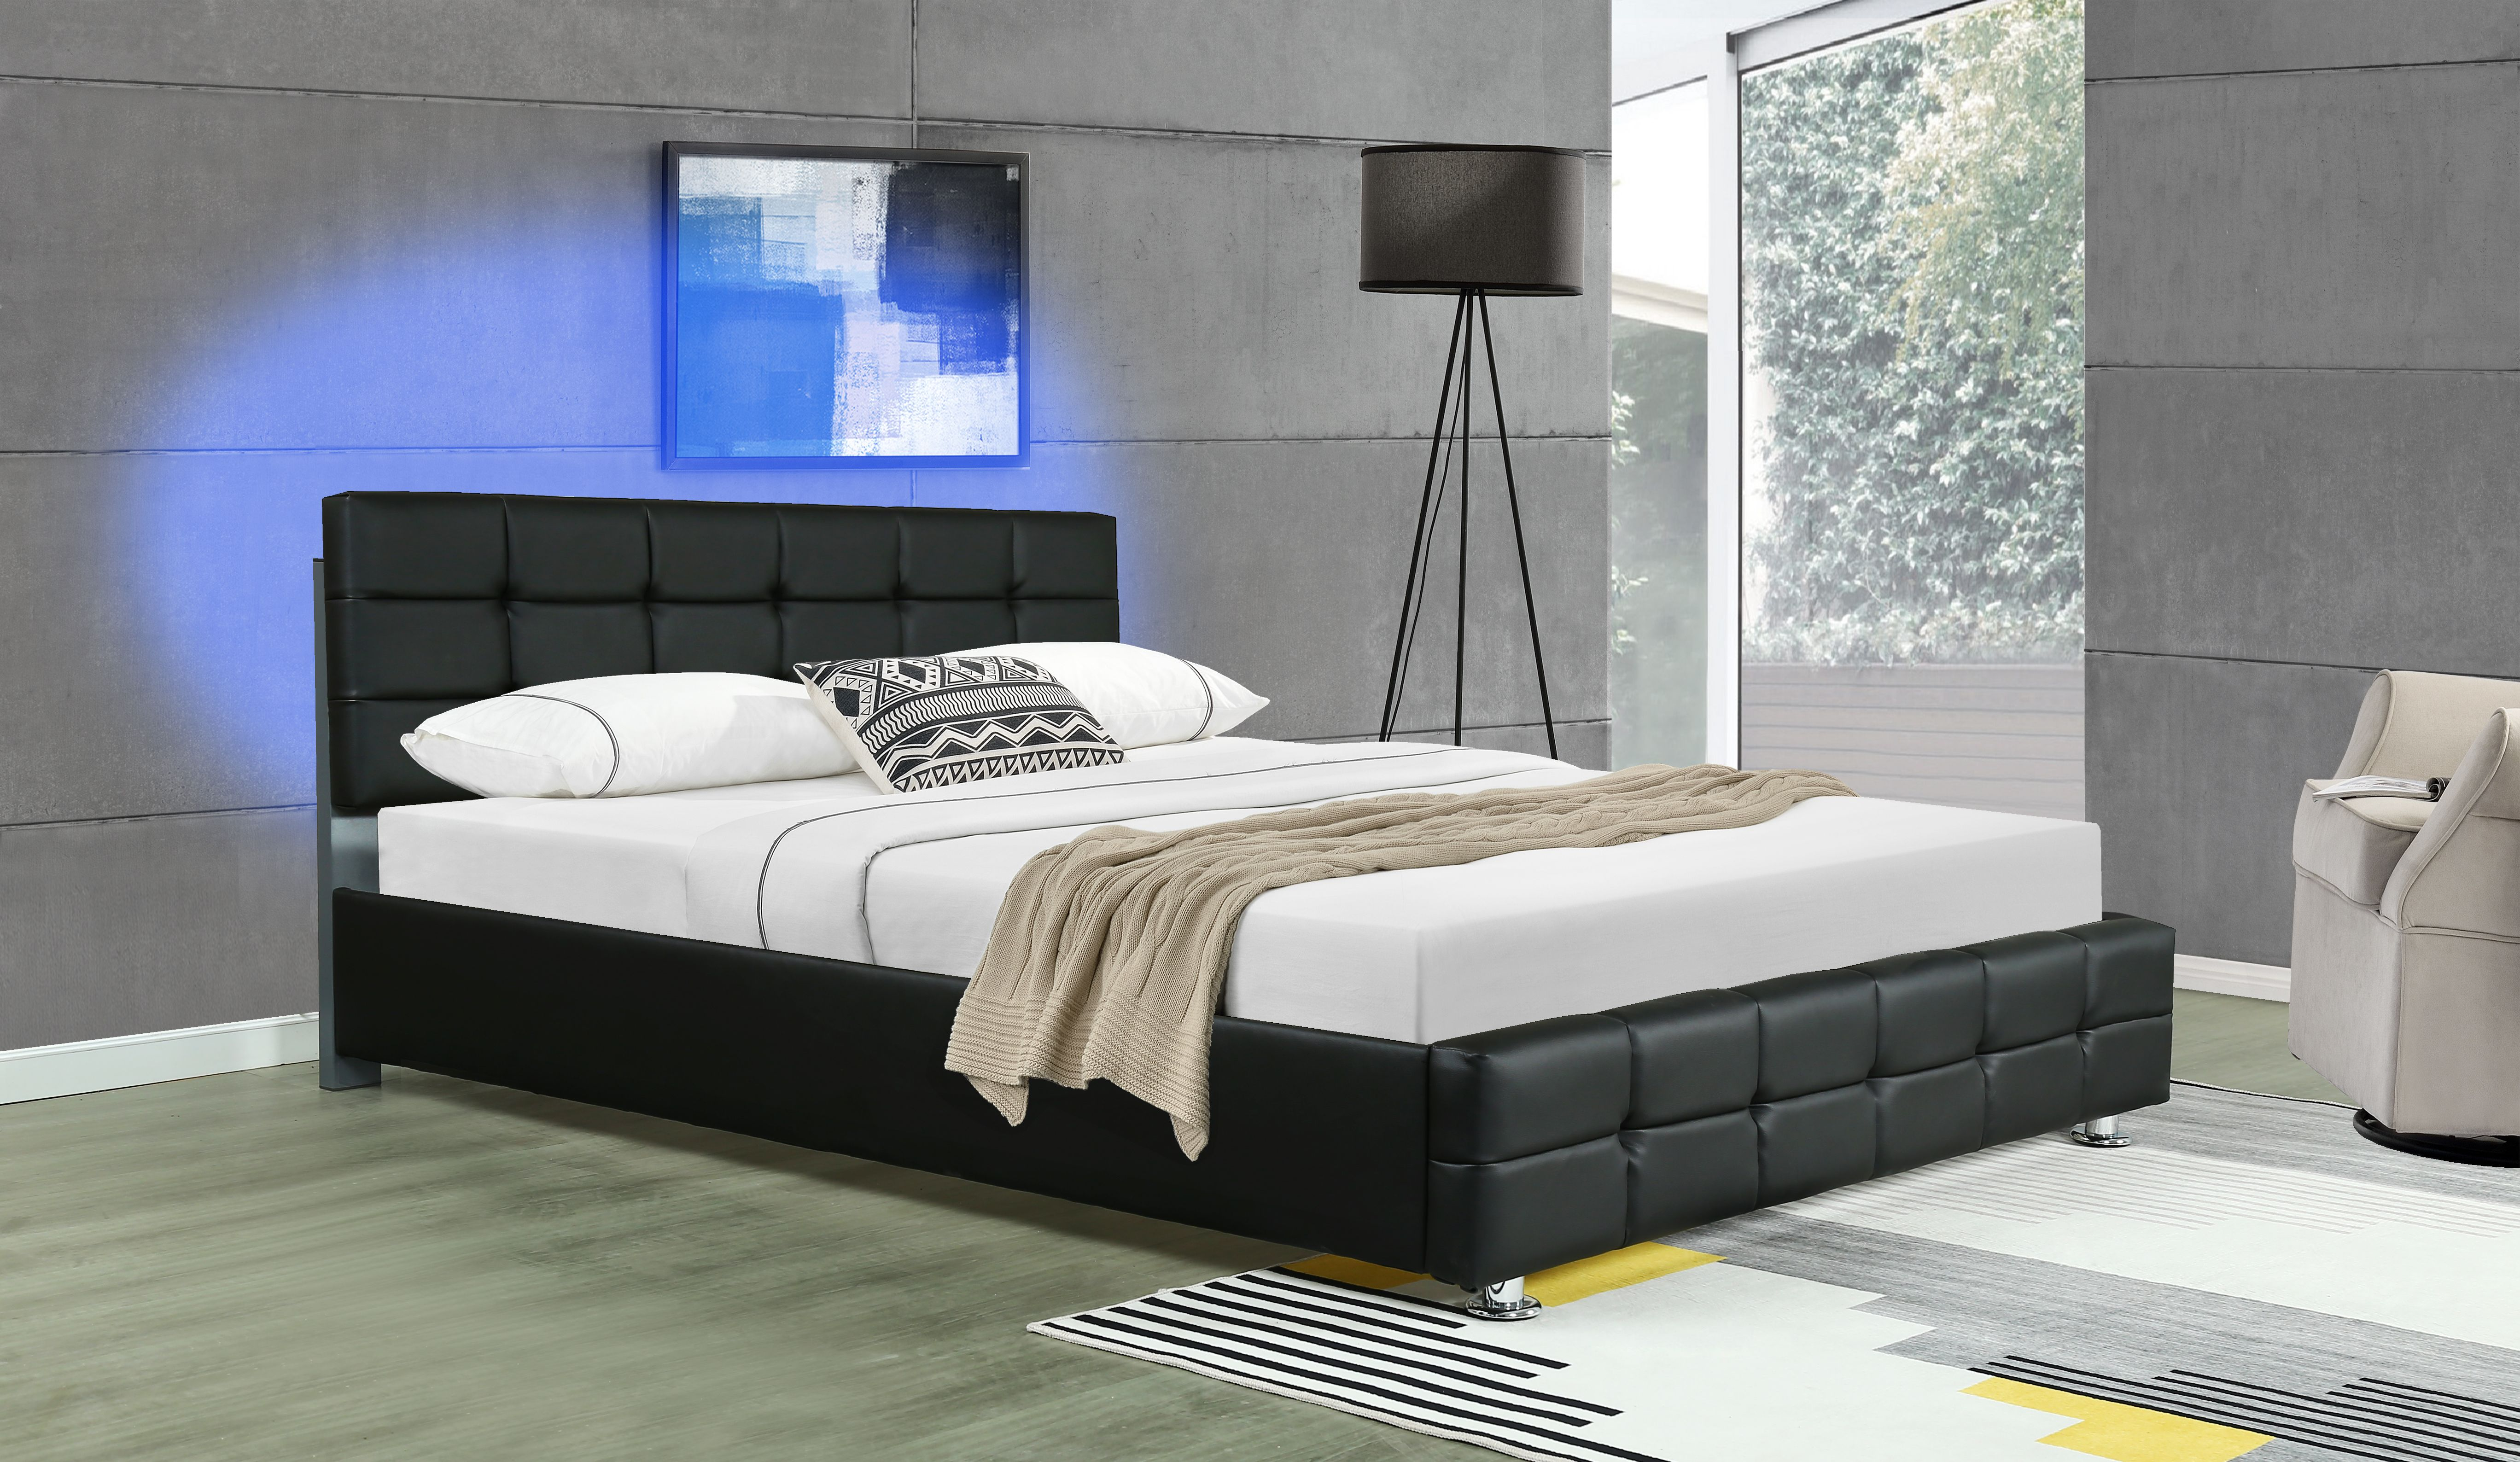 Auti Tufted Upholstered Low Profile Platform Bed in 2020